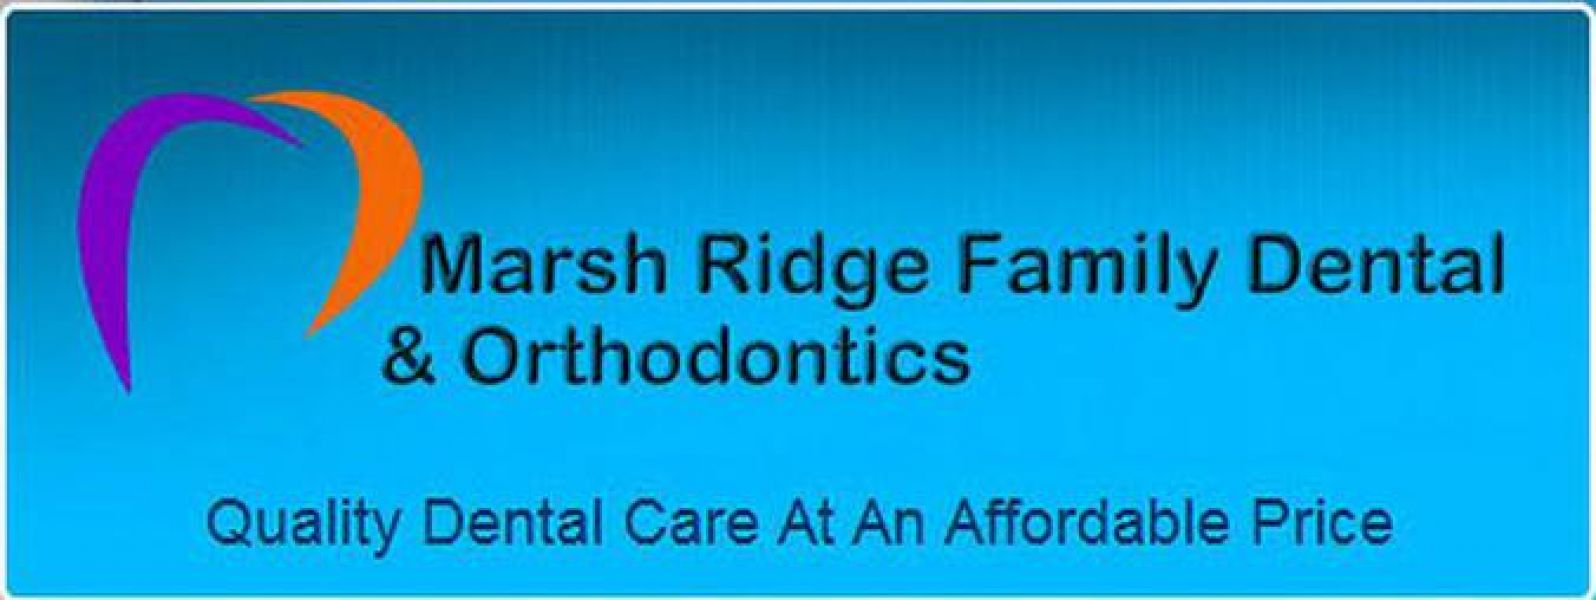 Marsh Ridge Family Dental & Orthodontics